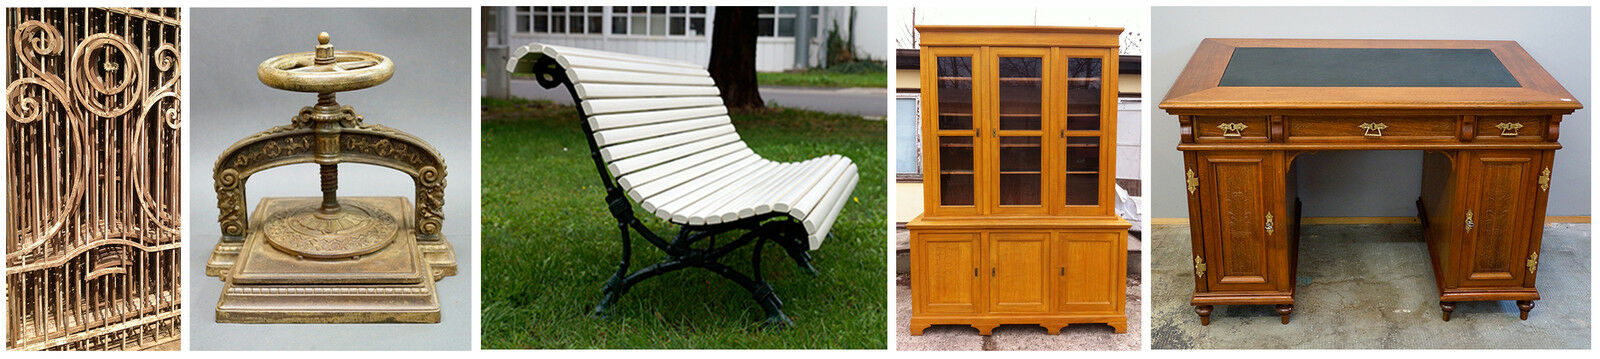 artikel im antiquesandgarden shop bei ebay. Black Bedroom Furniture Sets. Home Design Ideas